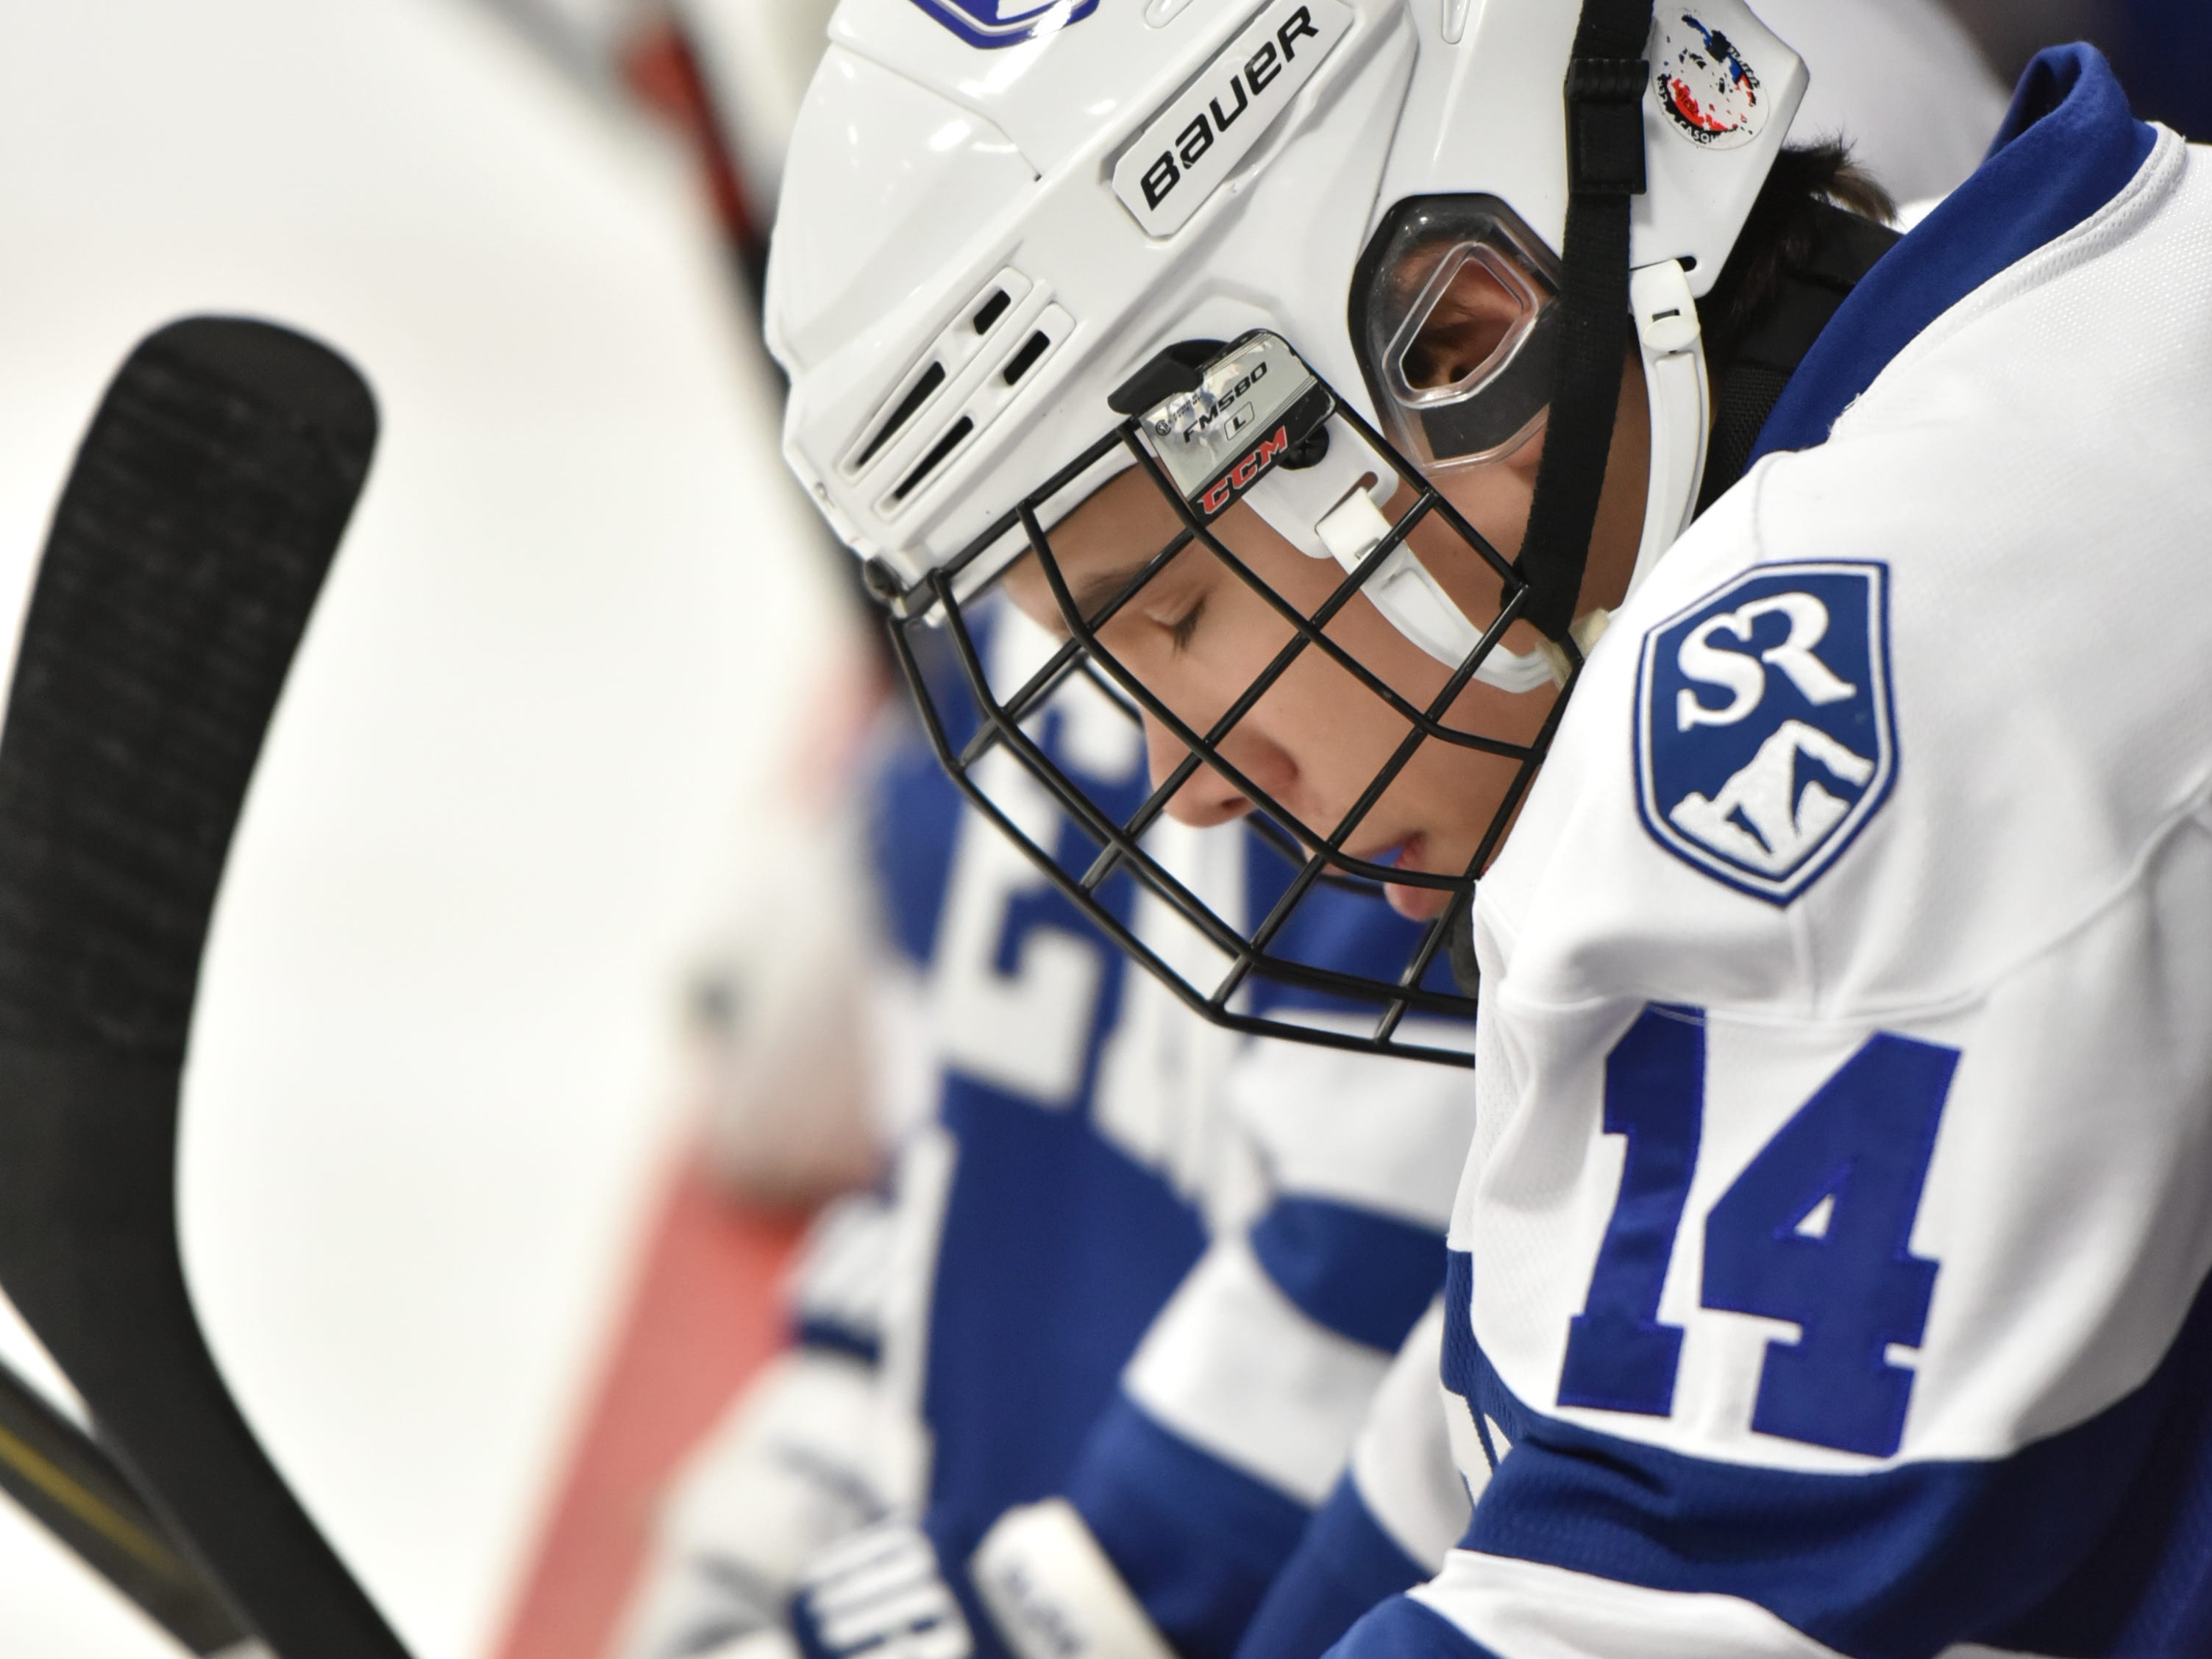 After a tough shift on the ice Salem Rock Nick Brosky bows his head on the bench.